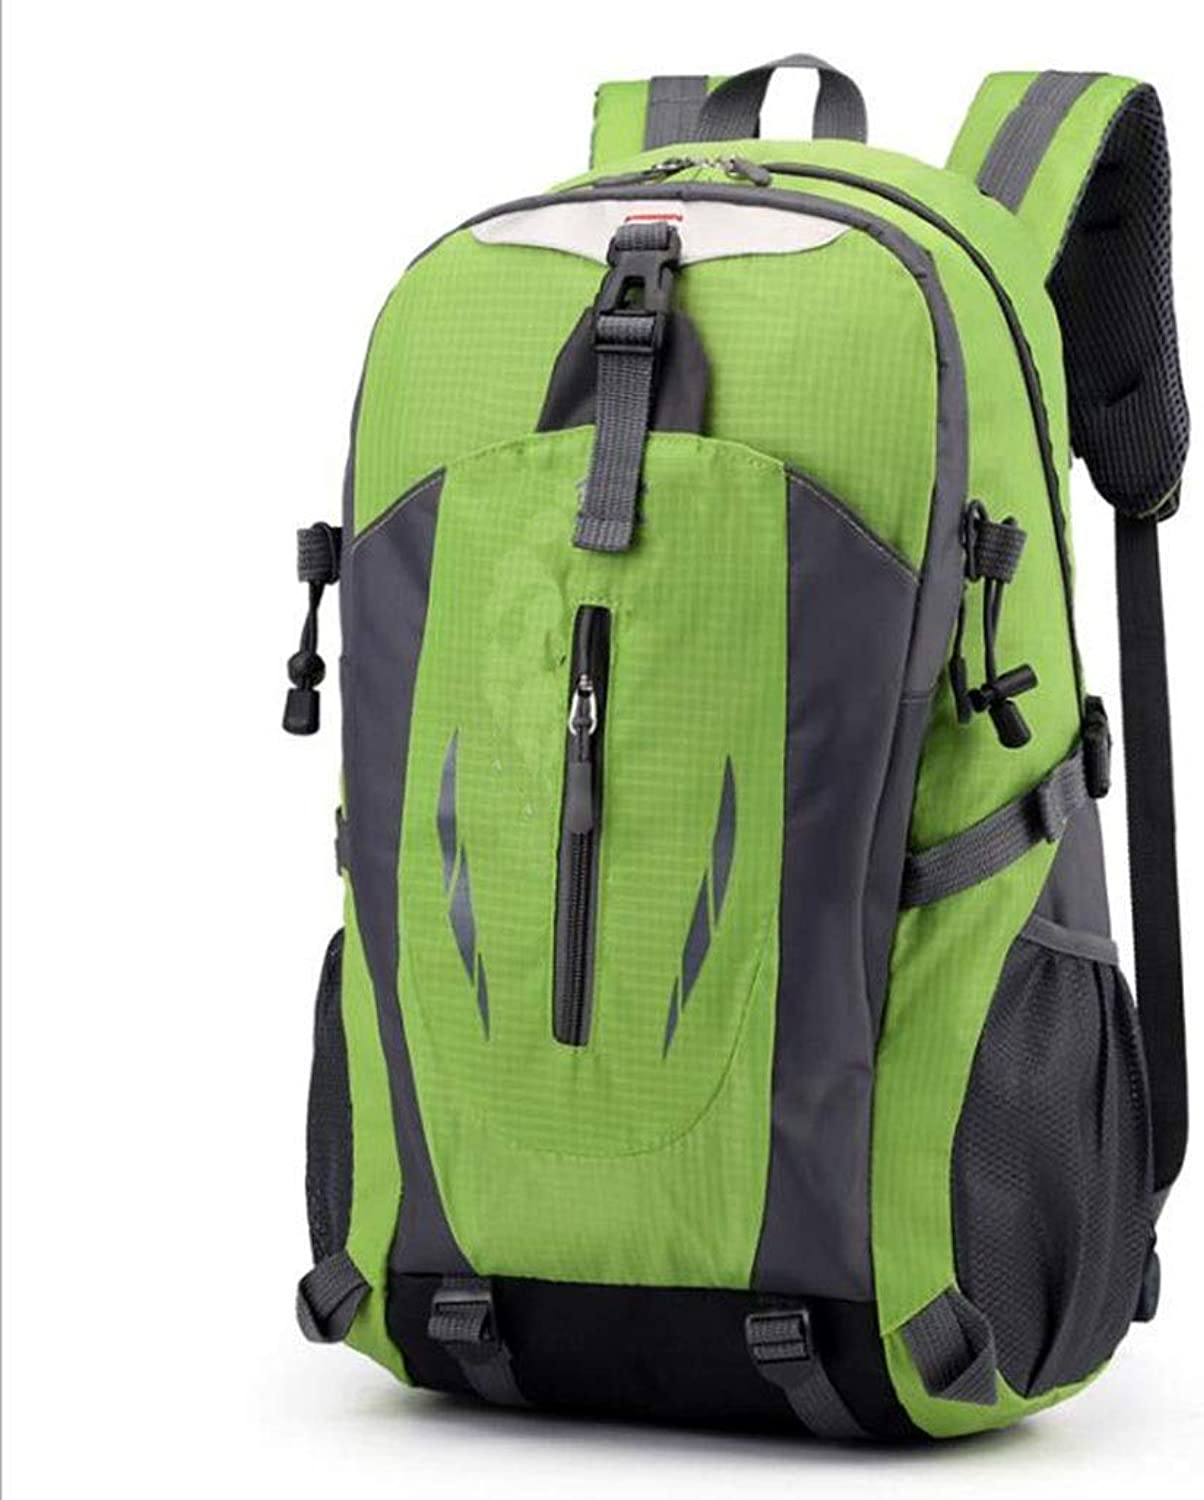 55L Outdoor Mountaineering Bag, Large Capacity Men and Women Outdoor Sports Backpack, Sports and Leisure Travel Backpack (color   Green, Size   OneSize)